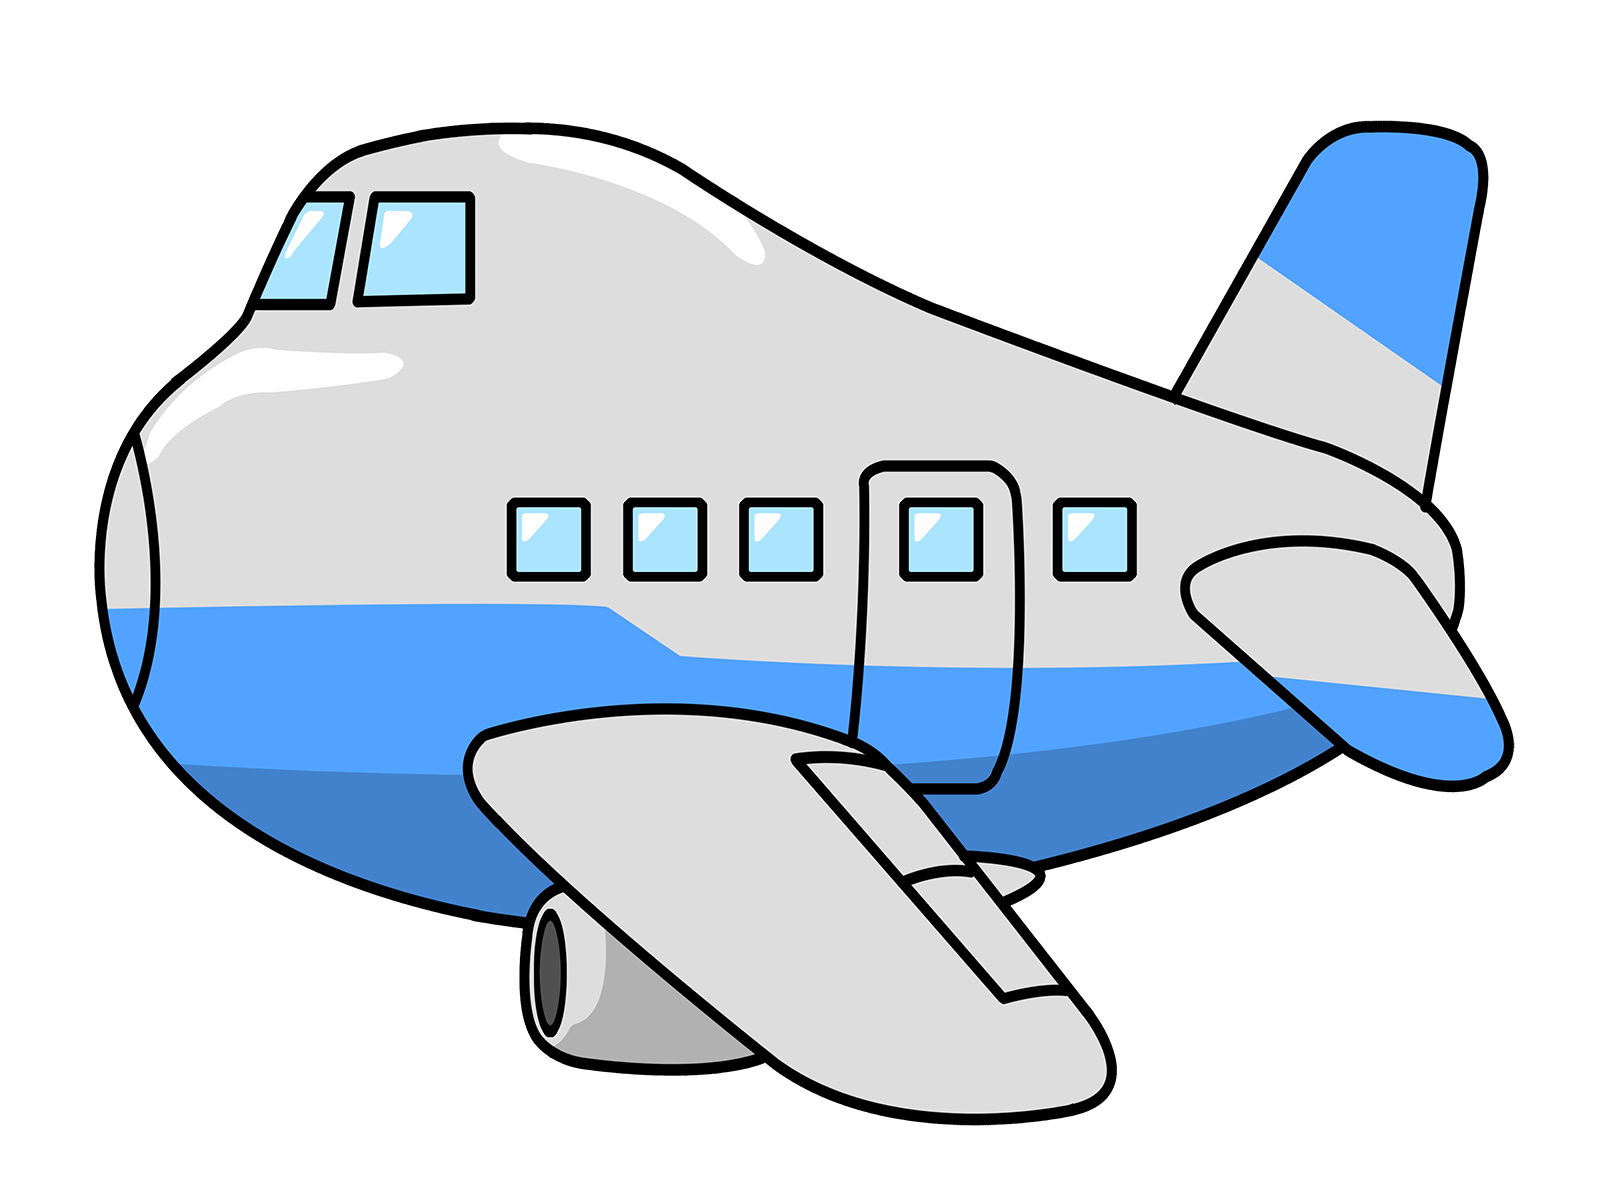 Plane clipart. Free airplane cliparts download